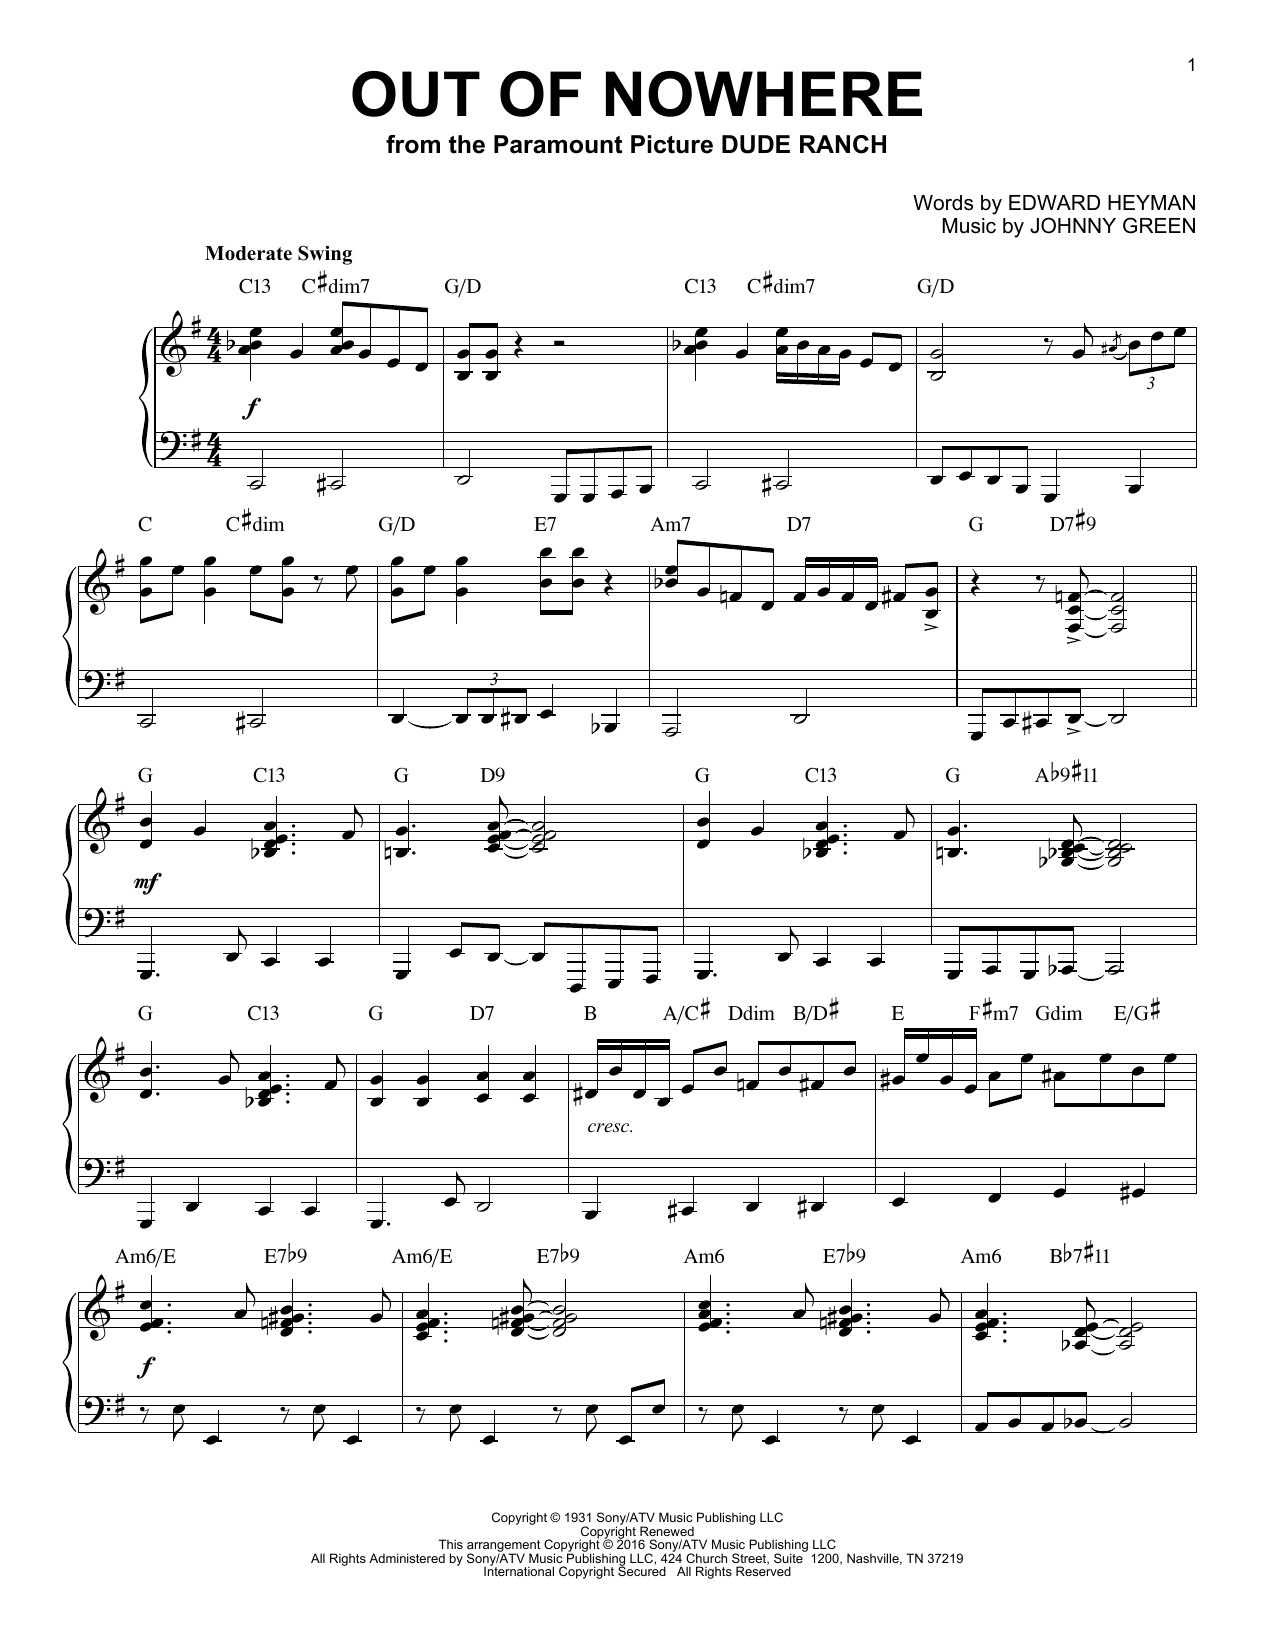 Download Buddy De Franco 'Out Of Nowhere' Digital Sheet Music Notes & Chords and start playing in minutes